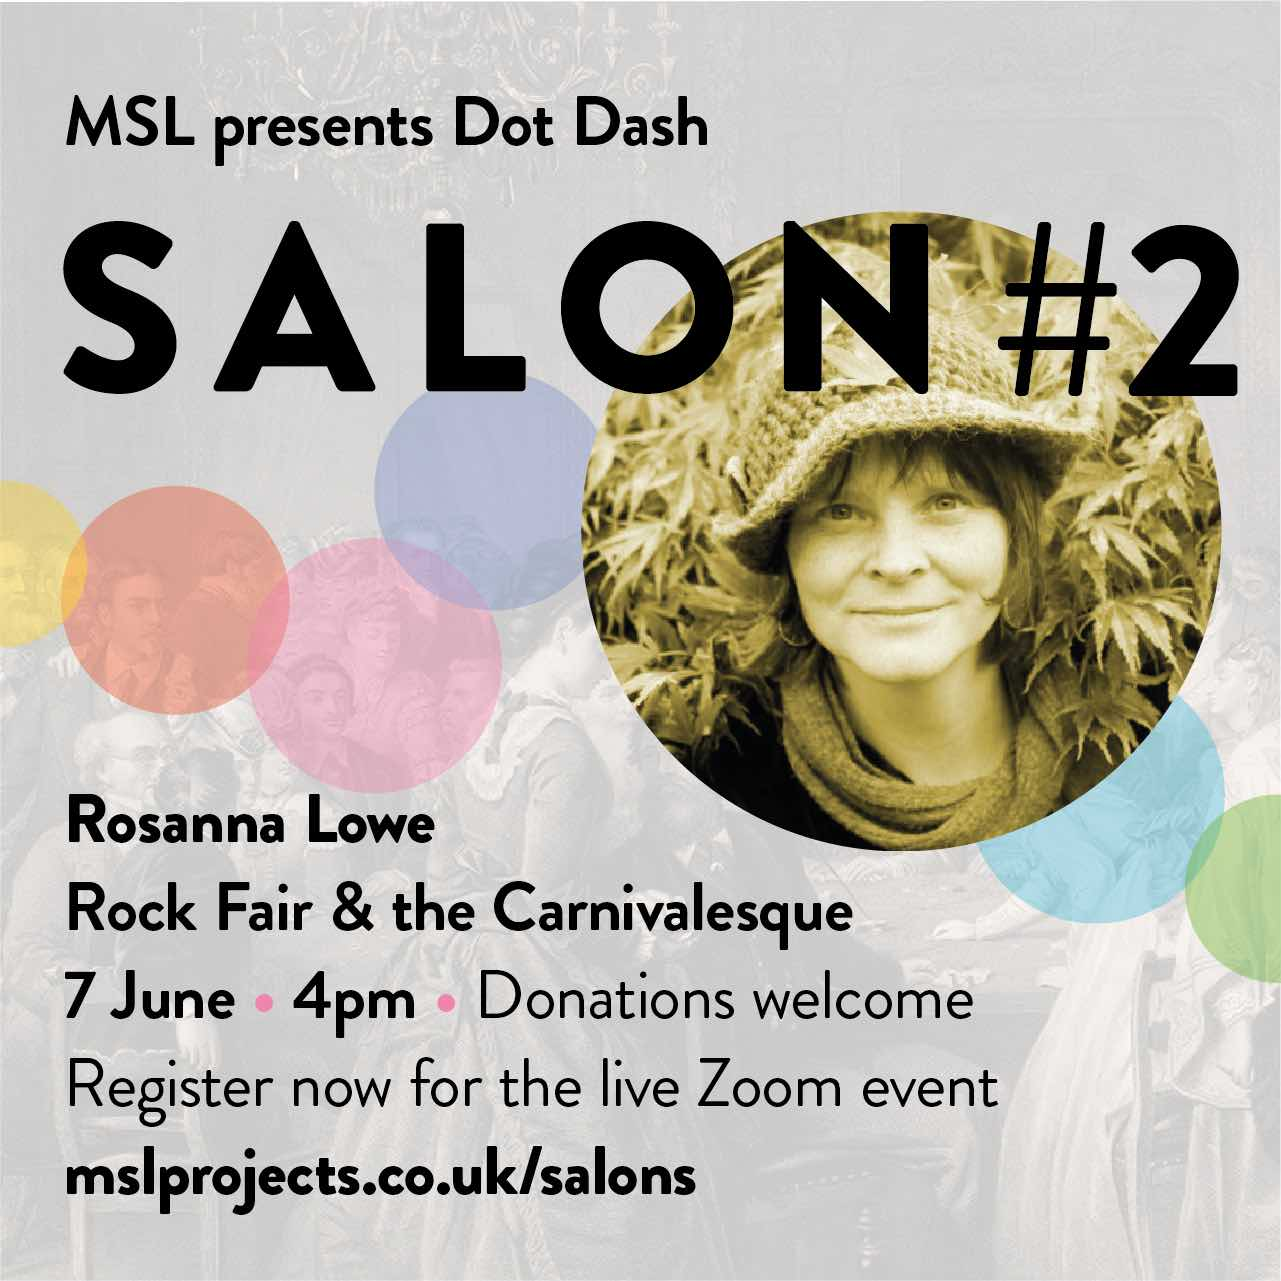 Salon 2 Rock Fair & the Carnivalesque 7 June 4pm for MSL Projects